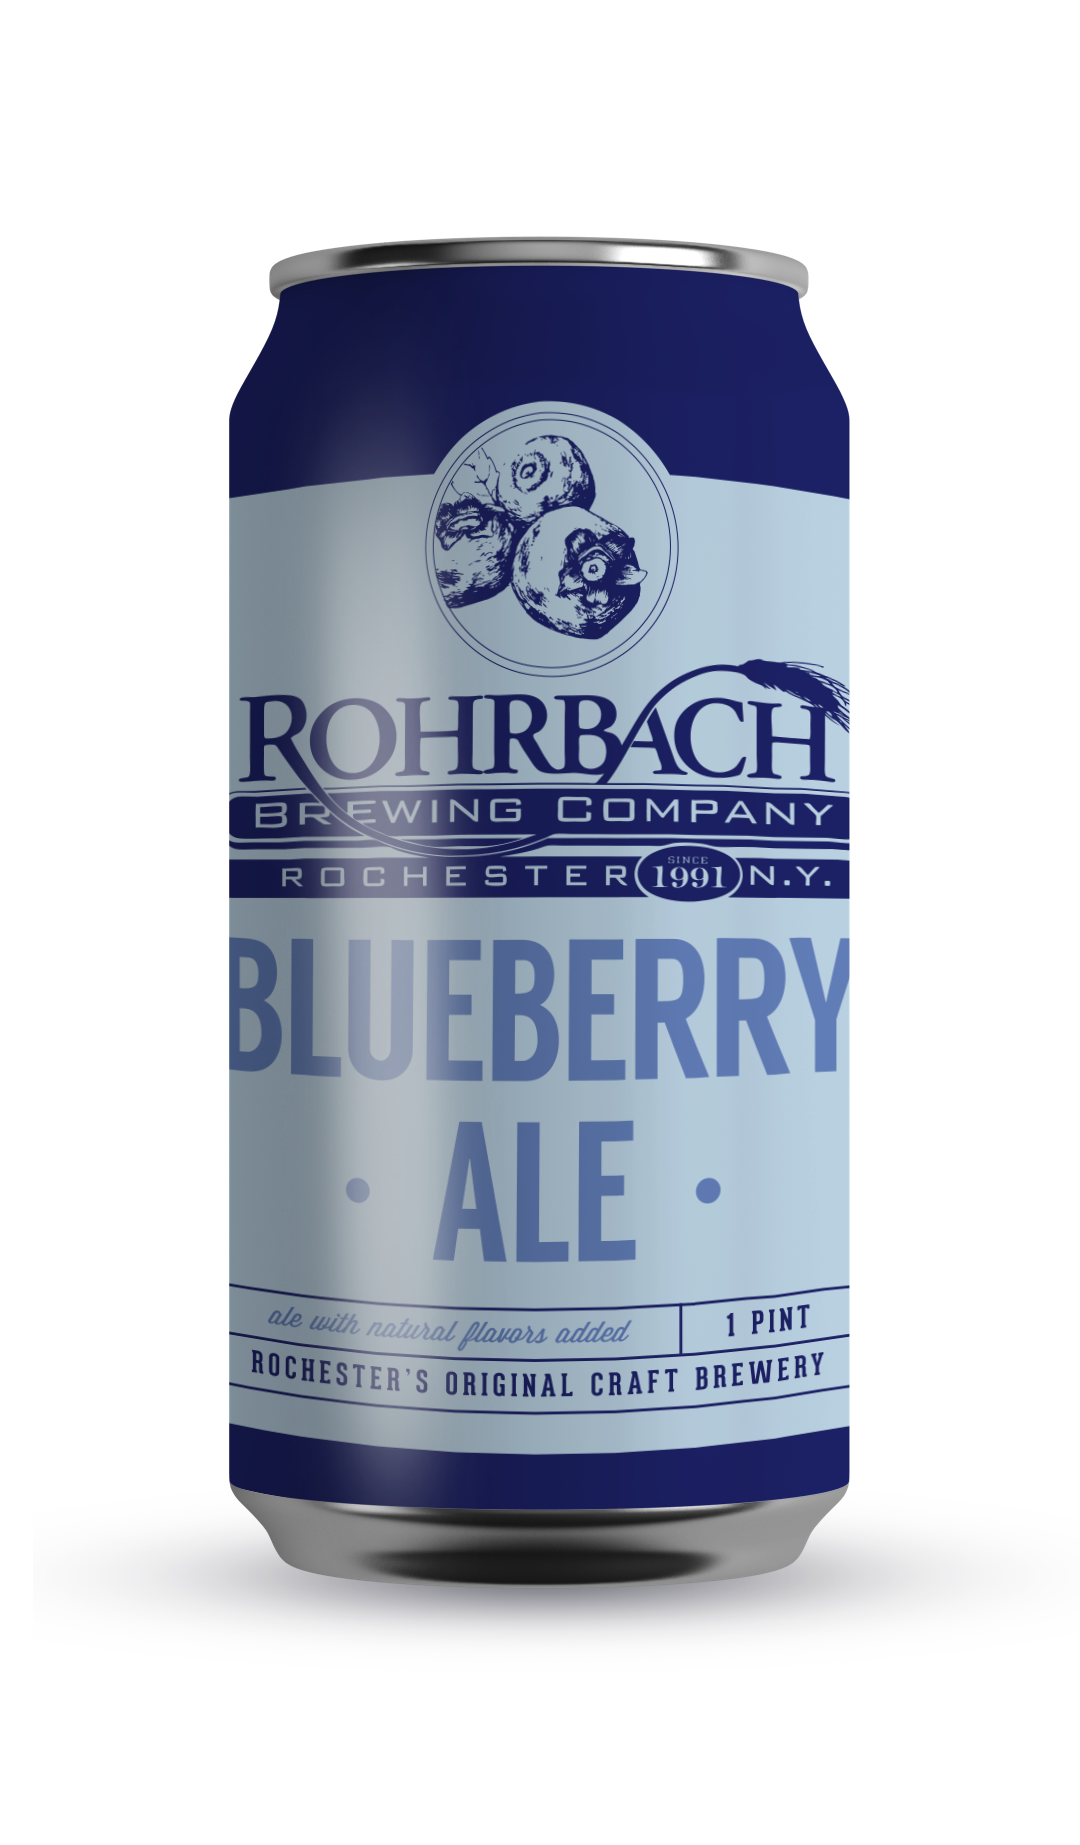 BLUEBERRY ALE  A blonde ale with subtle blueberry flavor added, crisp and clean with a noticeable hop presence.  ABV 4.5% | IBU 14 | SRM 2